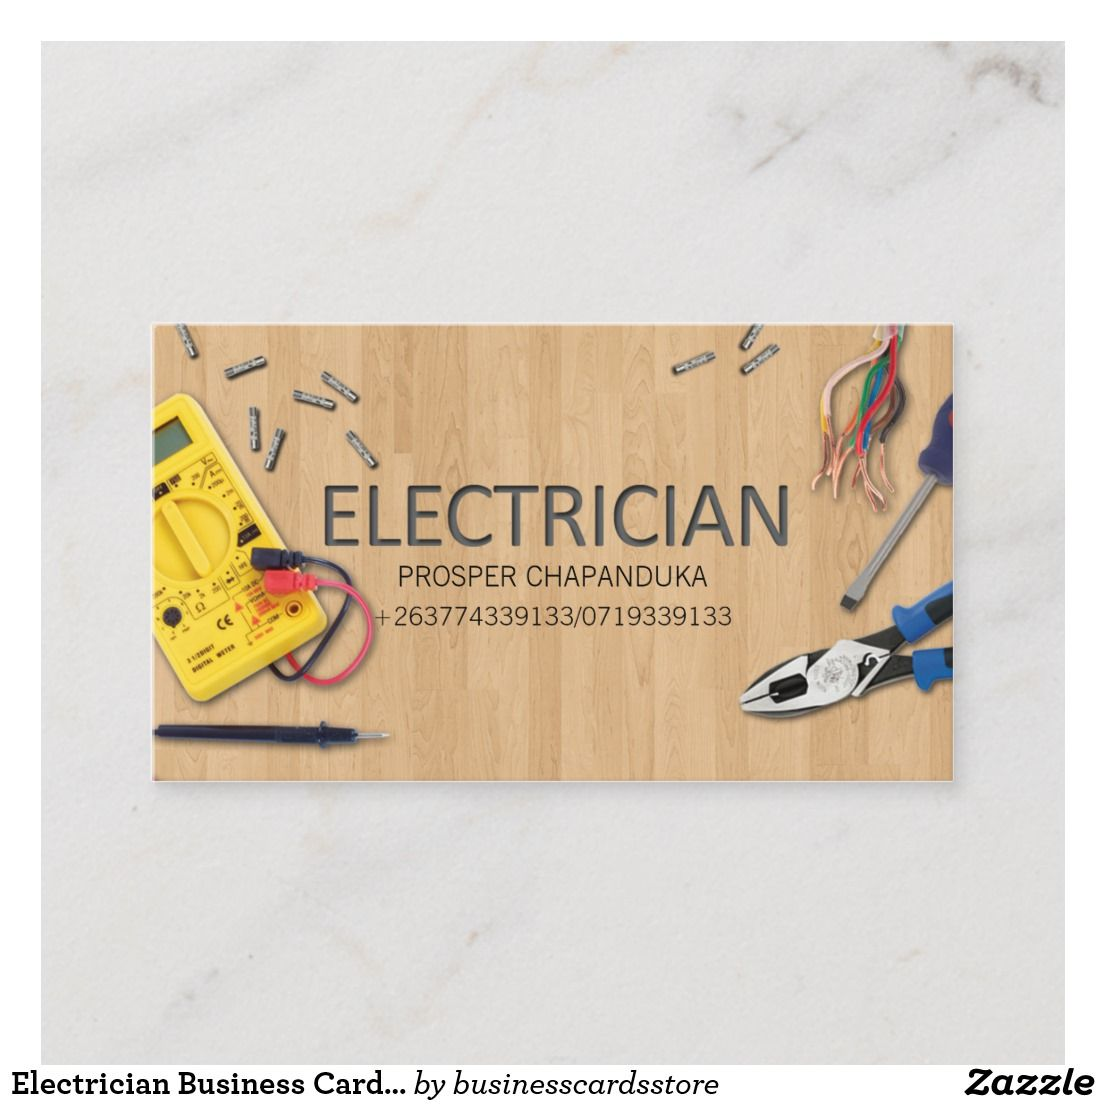 Create Your Own Business Card Zazzle Com In 2021 Electrical Tools Business Cards Electrician